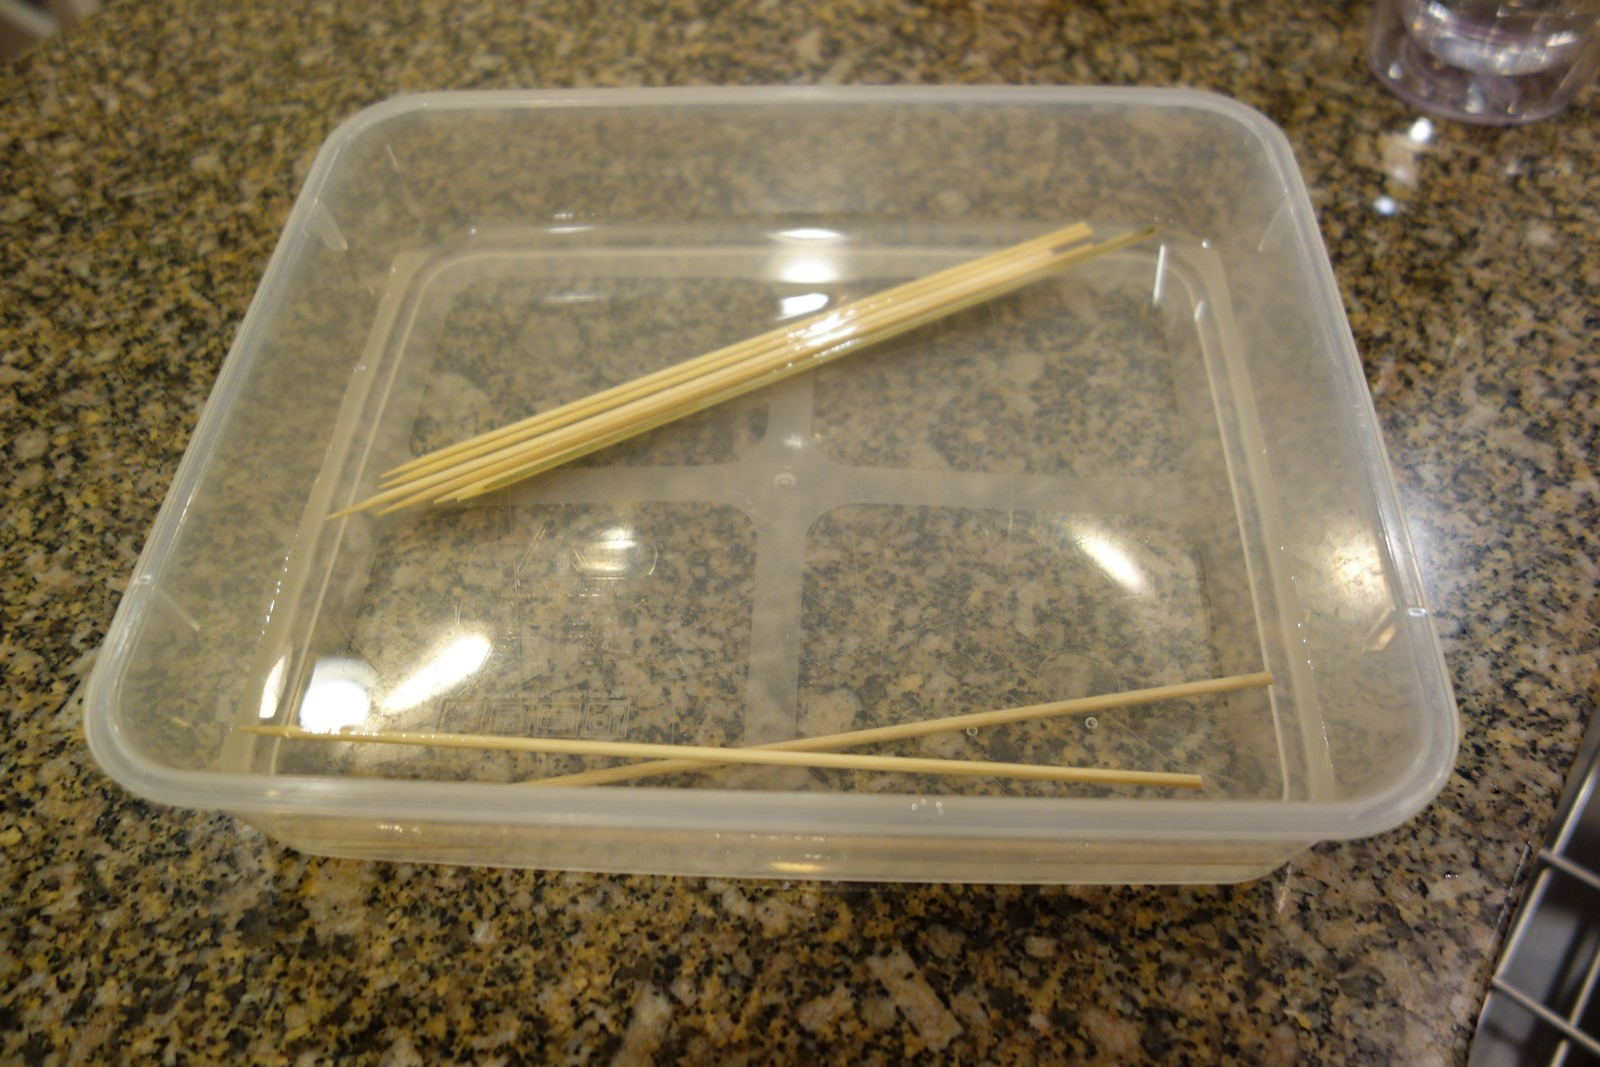 Soak the bamboo skewers in water for 30 minutes or so. You can buy 'em on Amazon or at Asian markets.